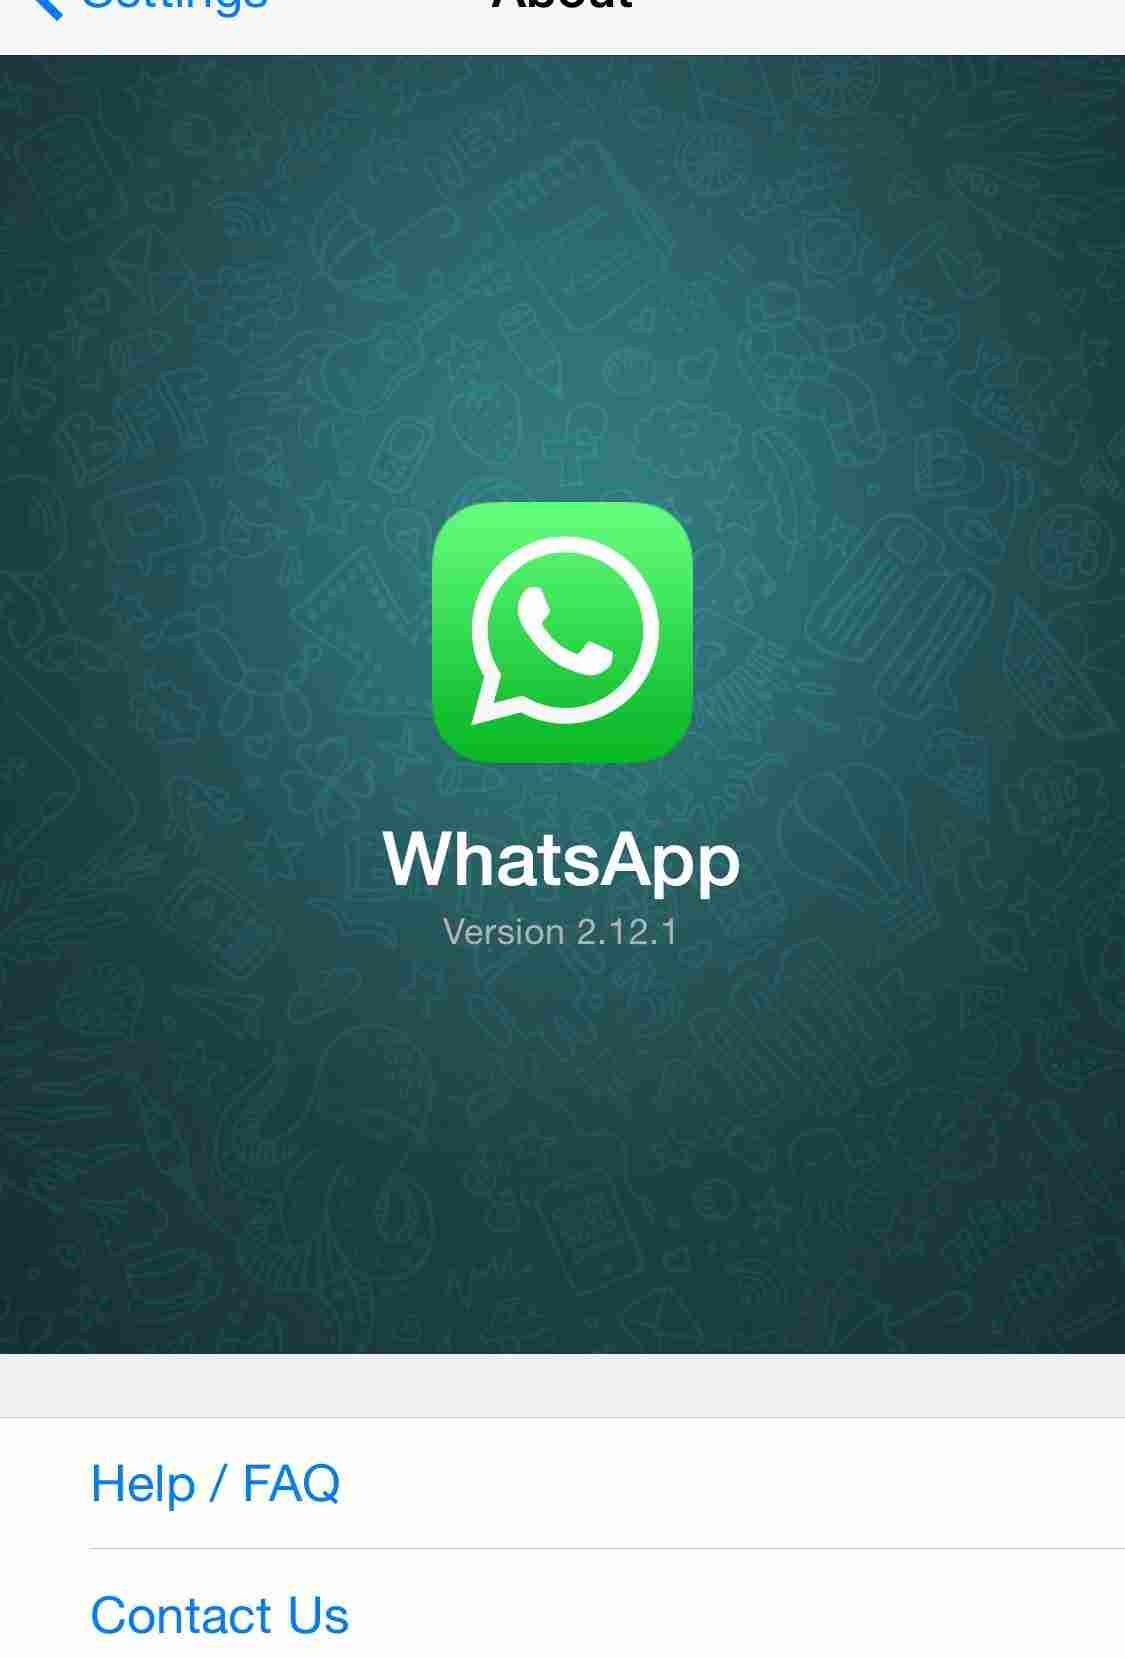 How to activate and use WhatsApp calling feature on iOS